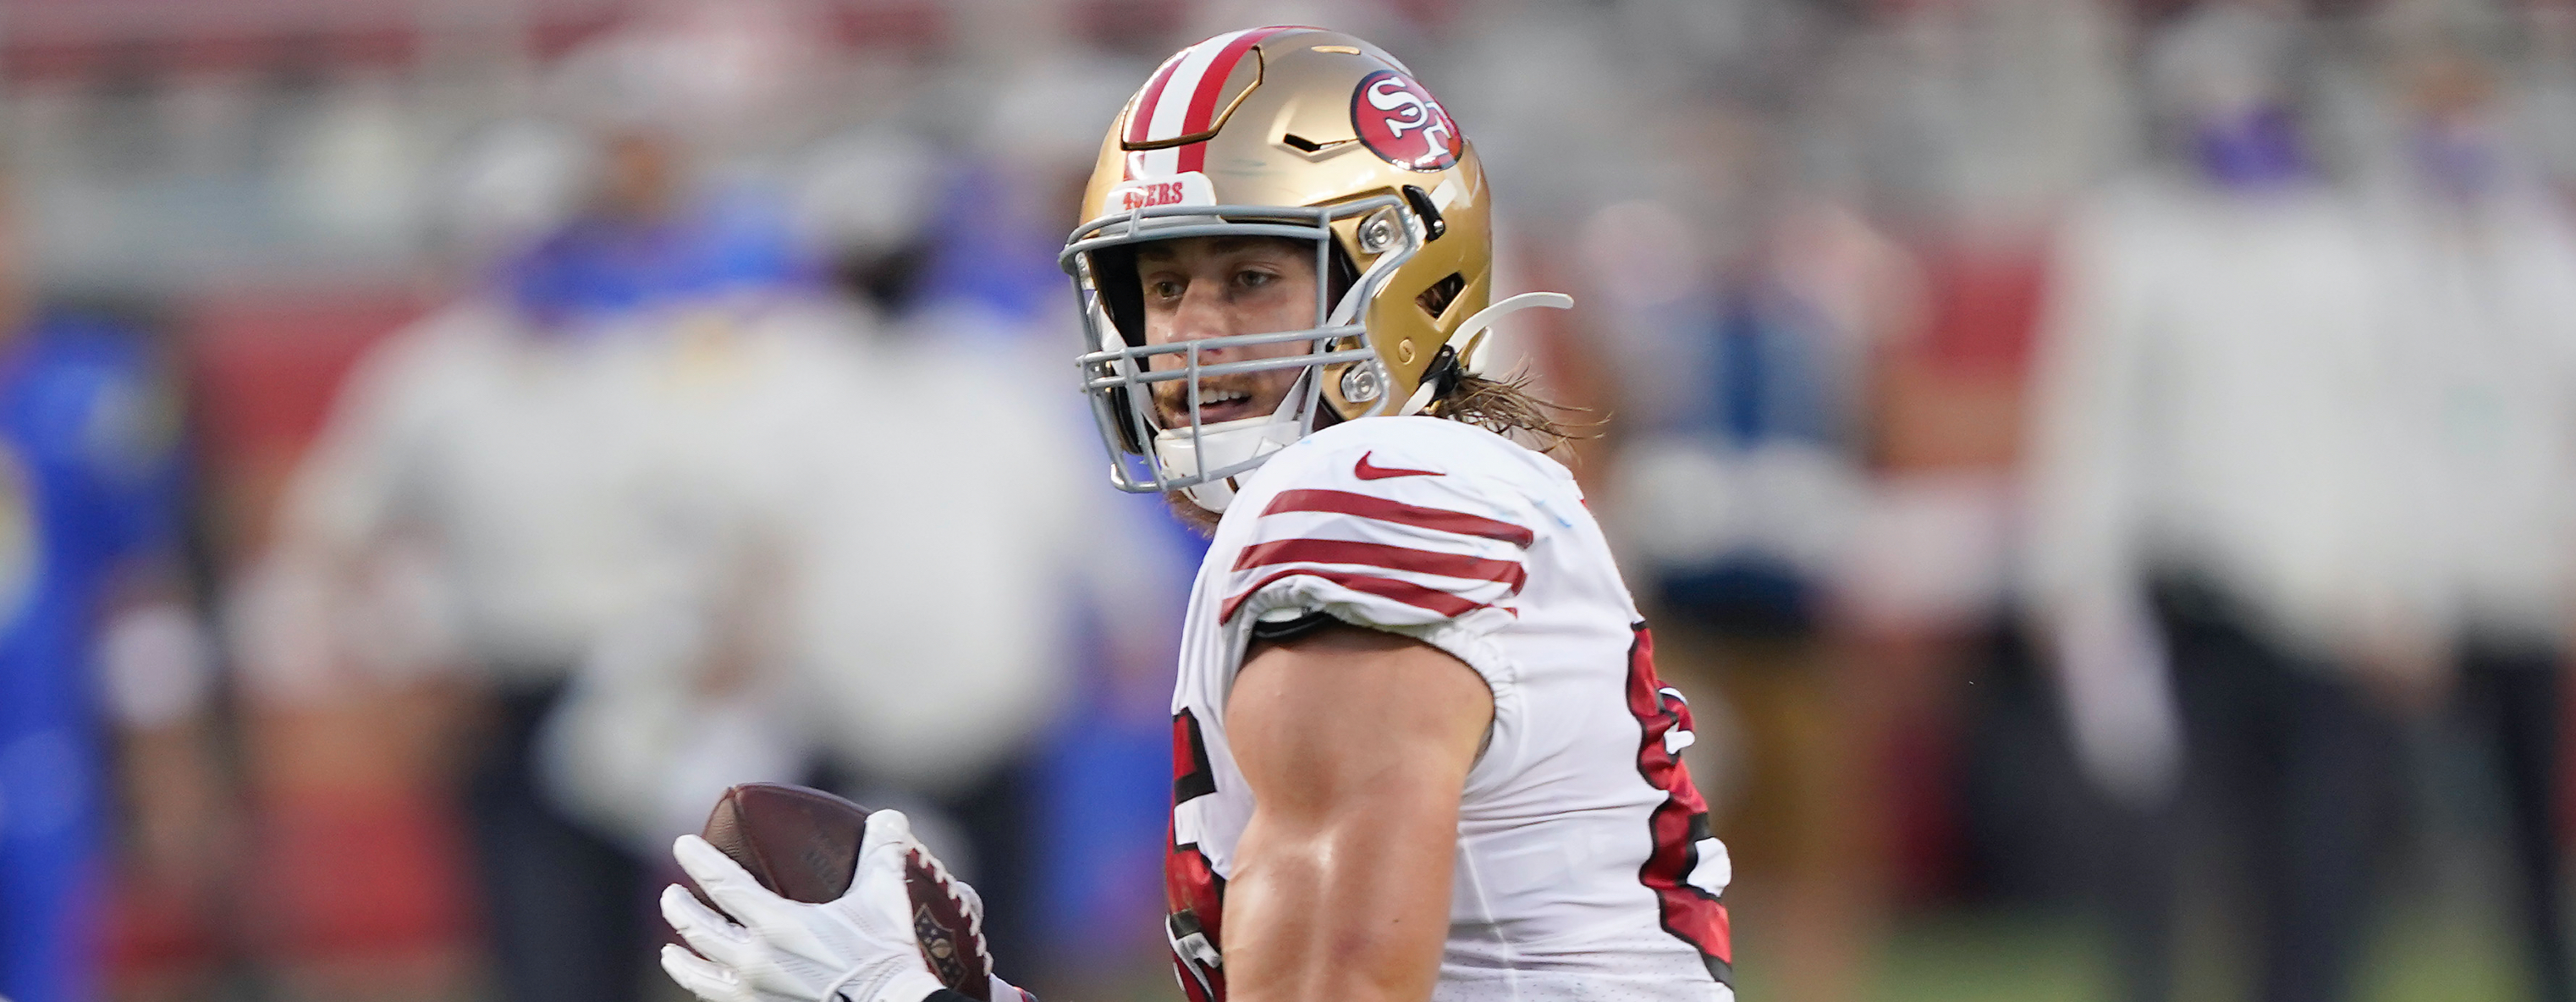 Week 8 Nfl Fantasy Te Breakdown Is George Kittle A Must Start Vs Seahawks